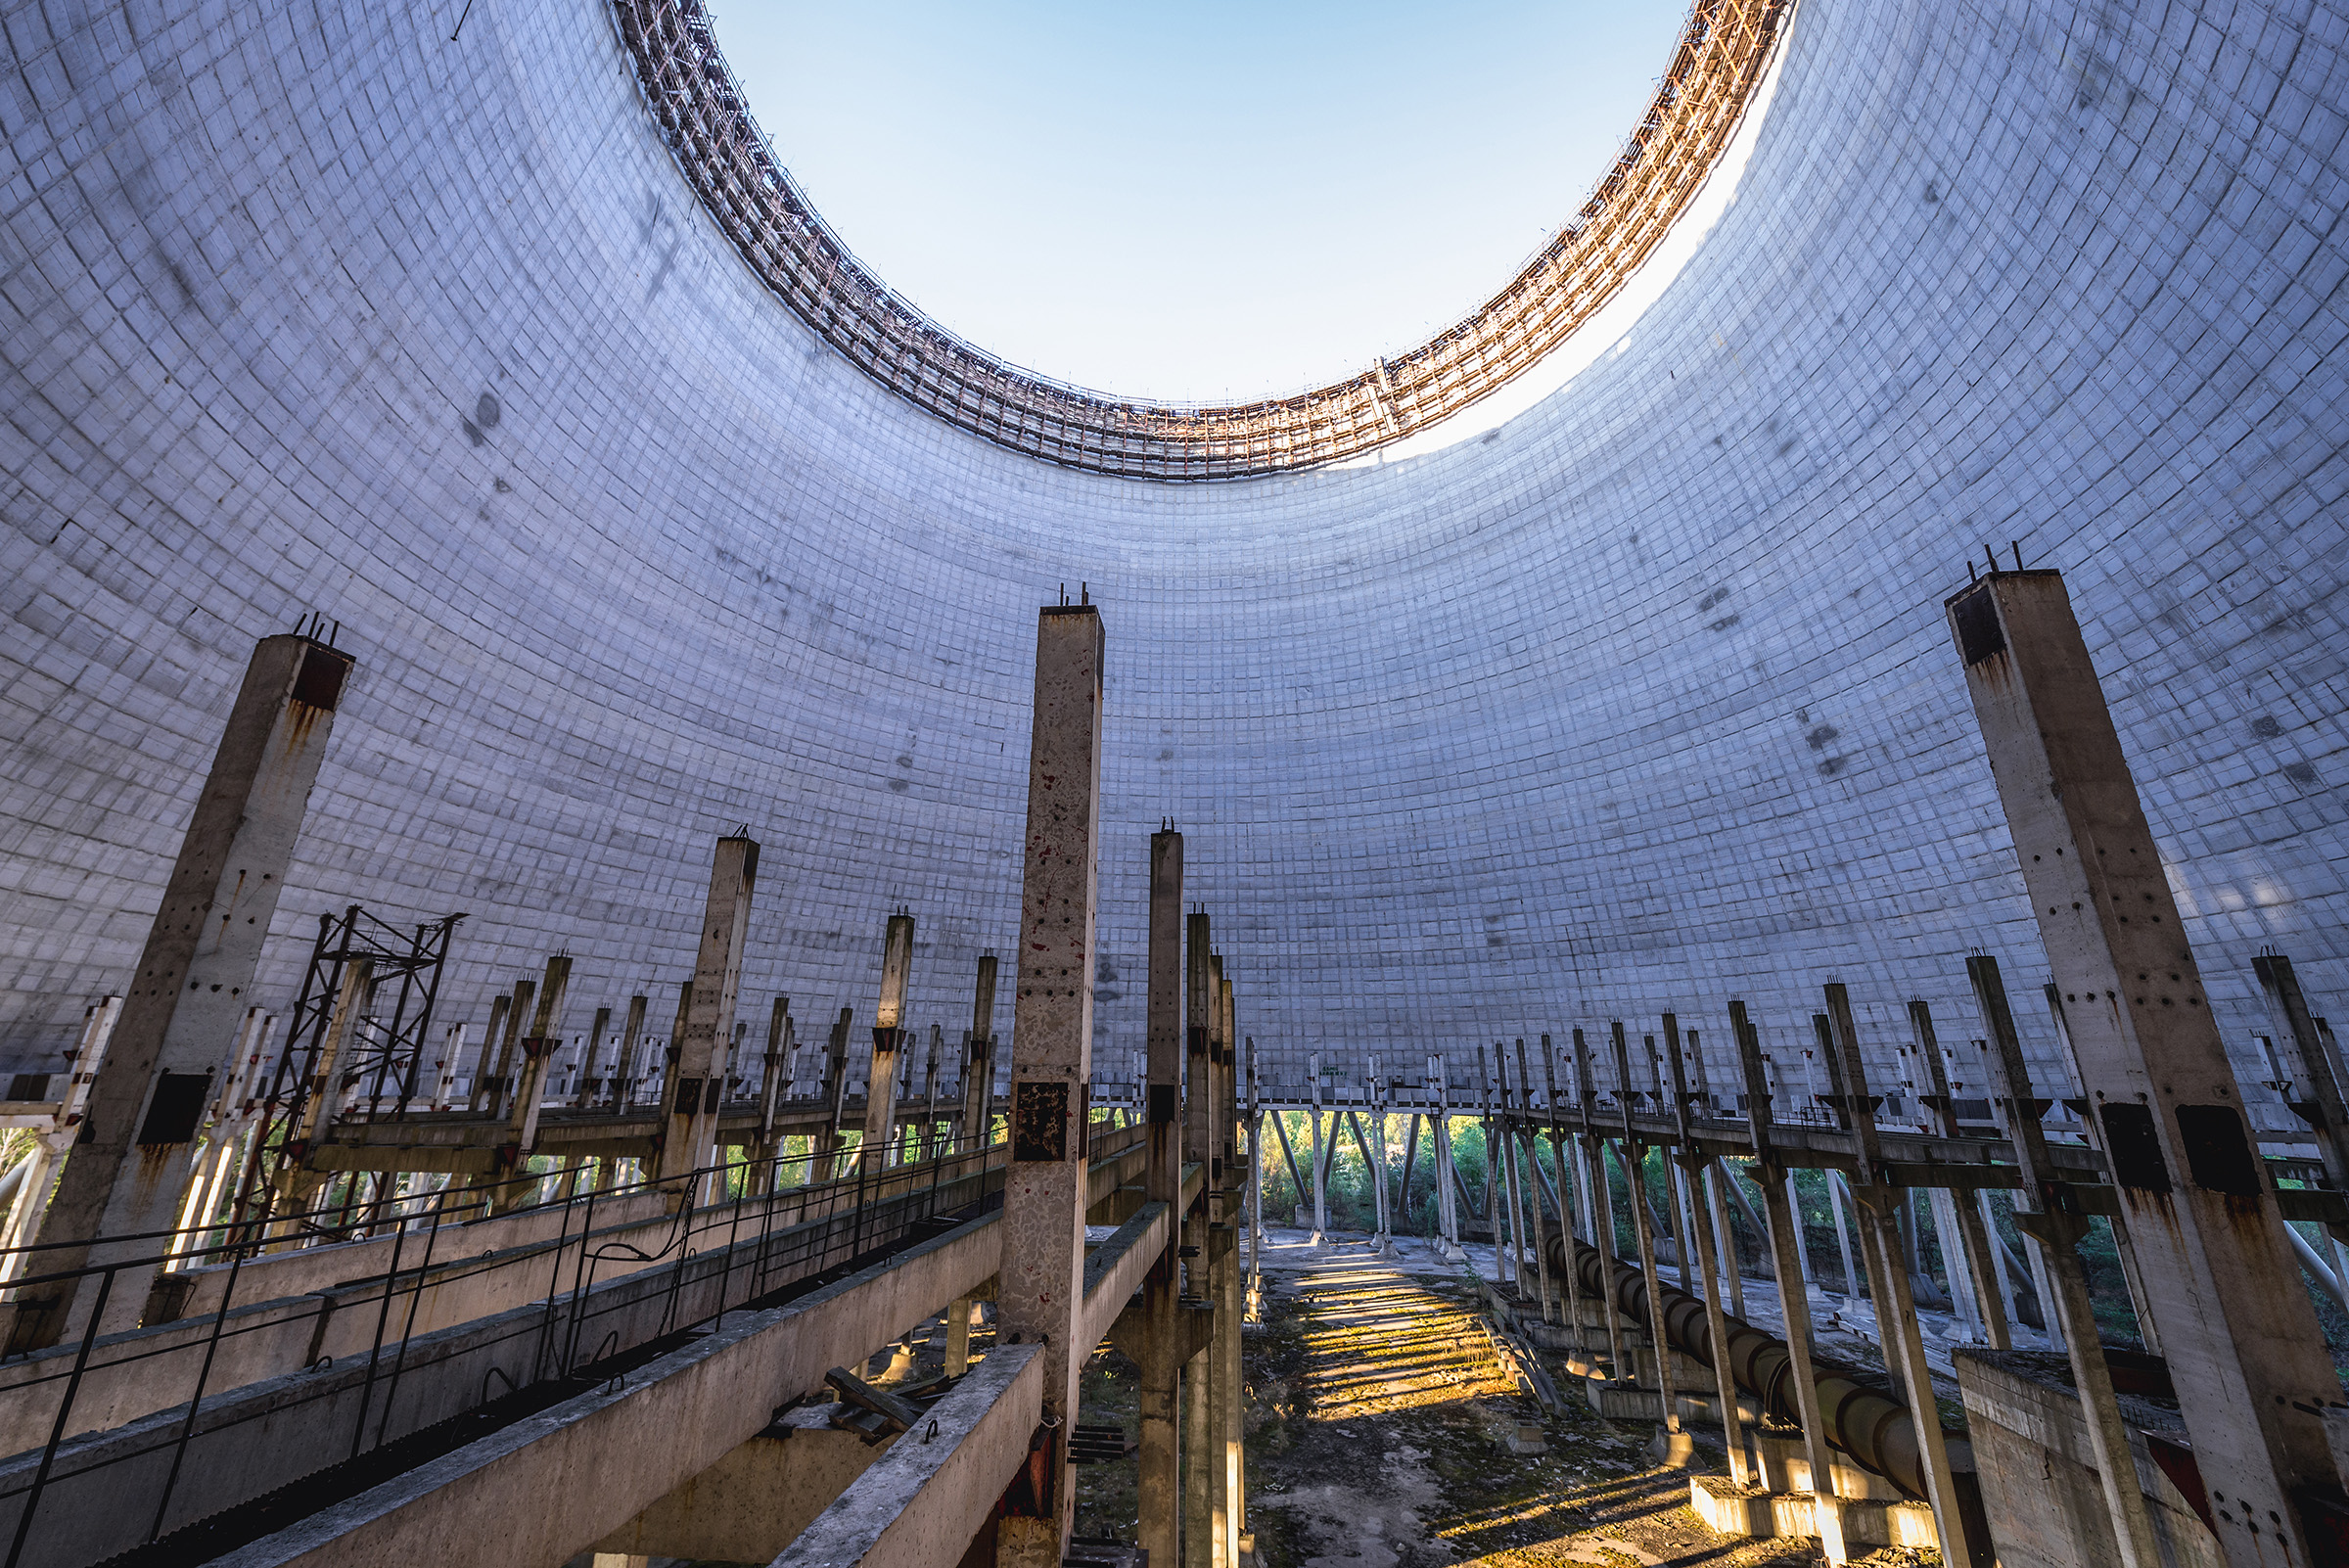 Texo conducts world's first inspection inside a Uranium Enrichment Facility